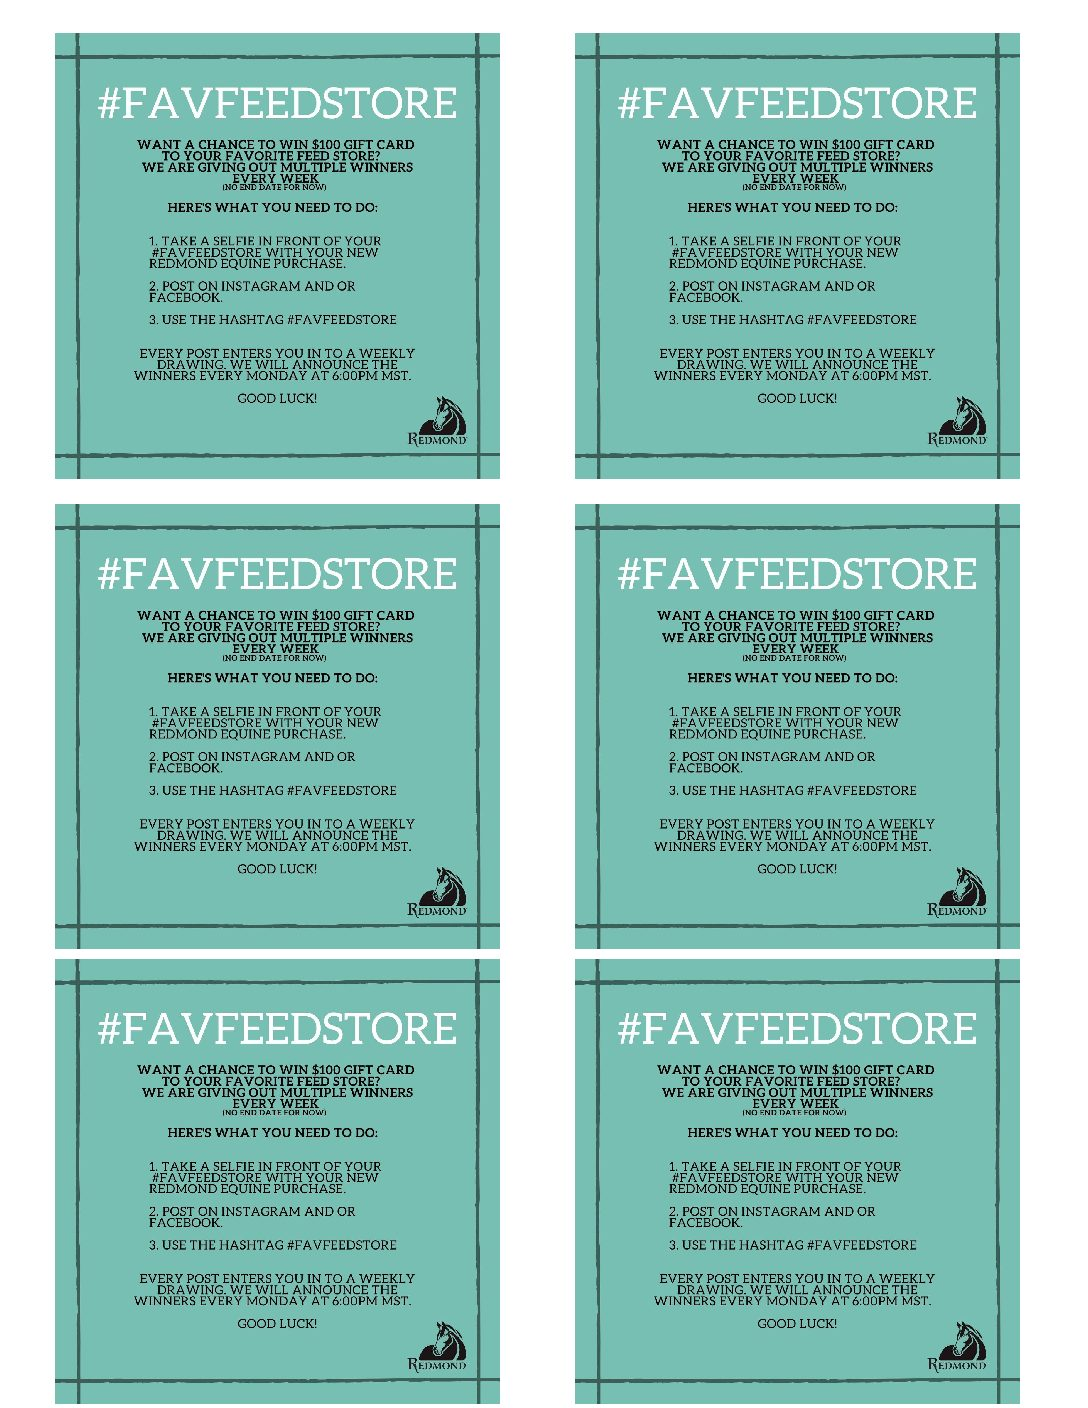 Favorite Feed Store Flyer